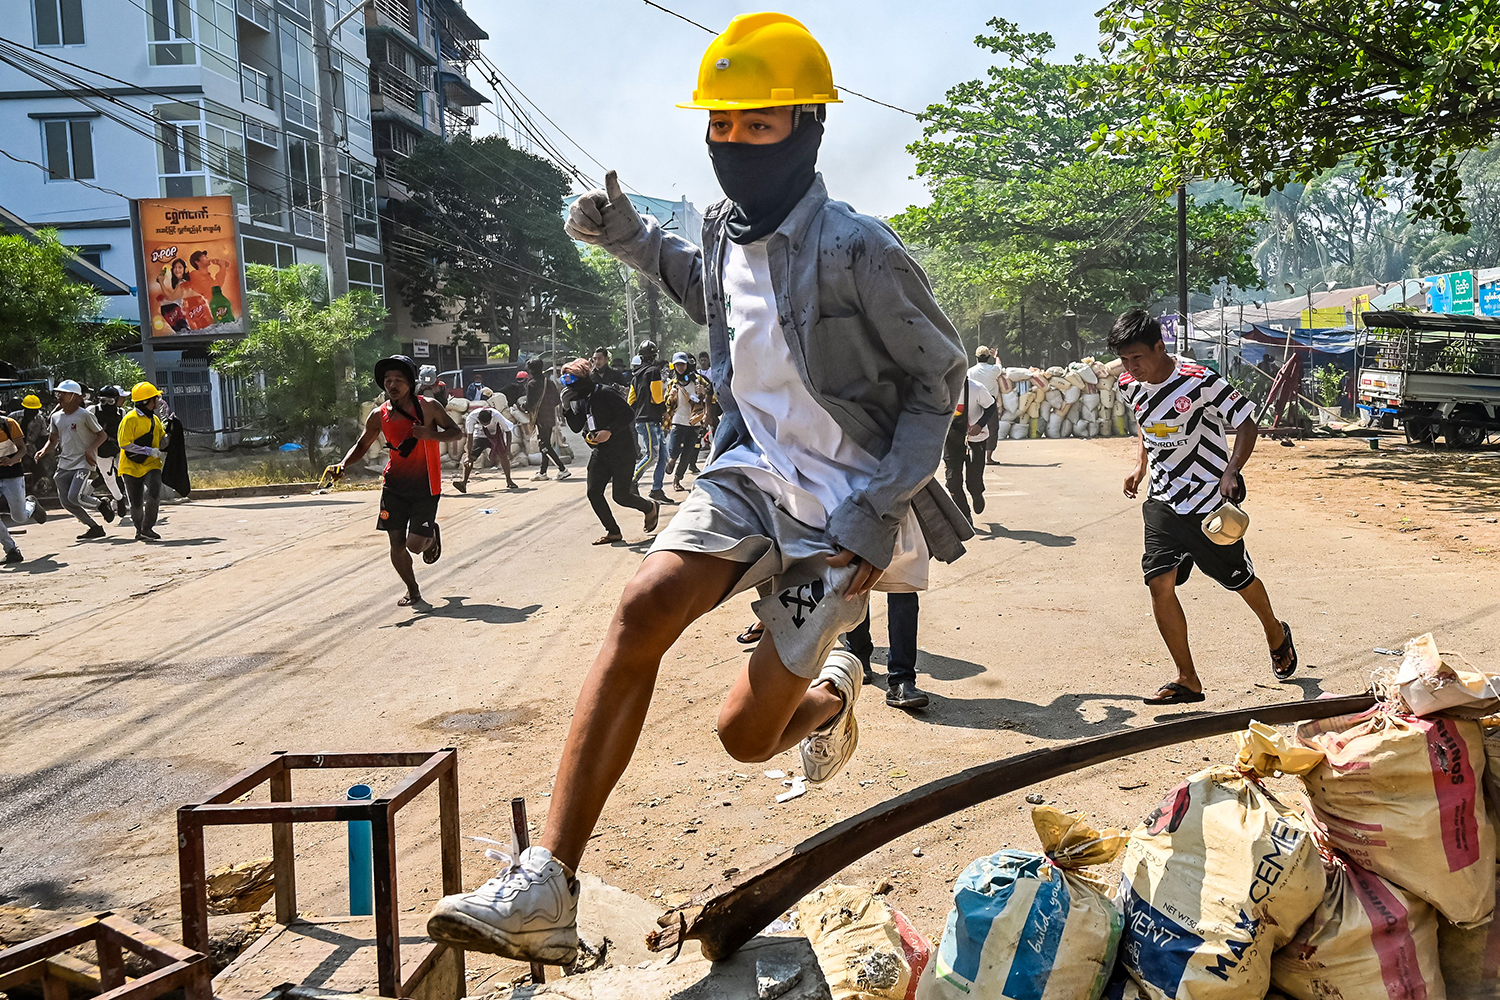 A protester jumps over a makeshift barricade during a crackdown by security forces on a demonstration against the military coup in Yangon, Myanmar's Thaketa Township on March 19. STR/AFP via Getty Images